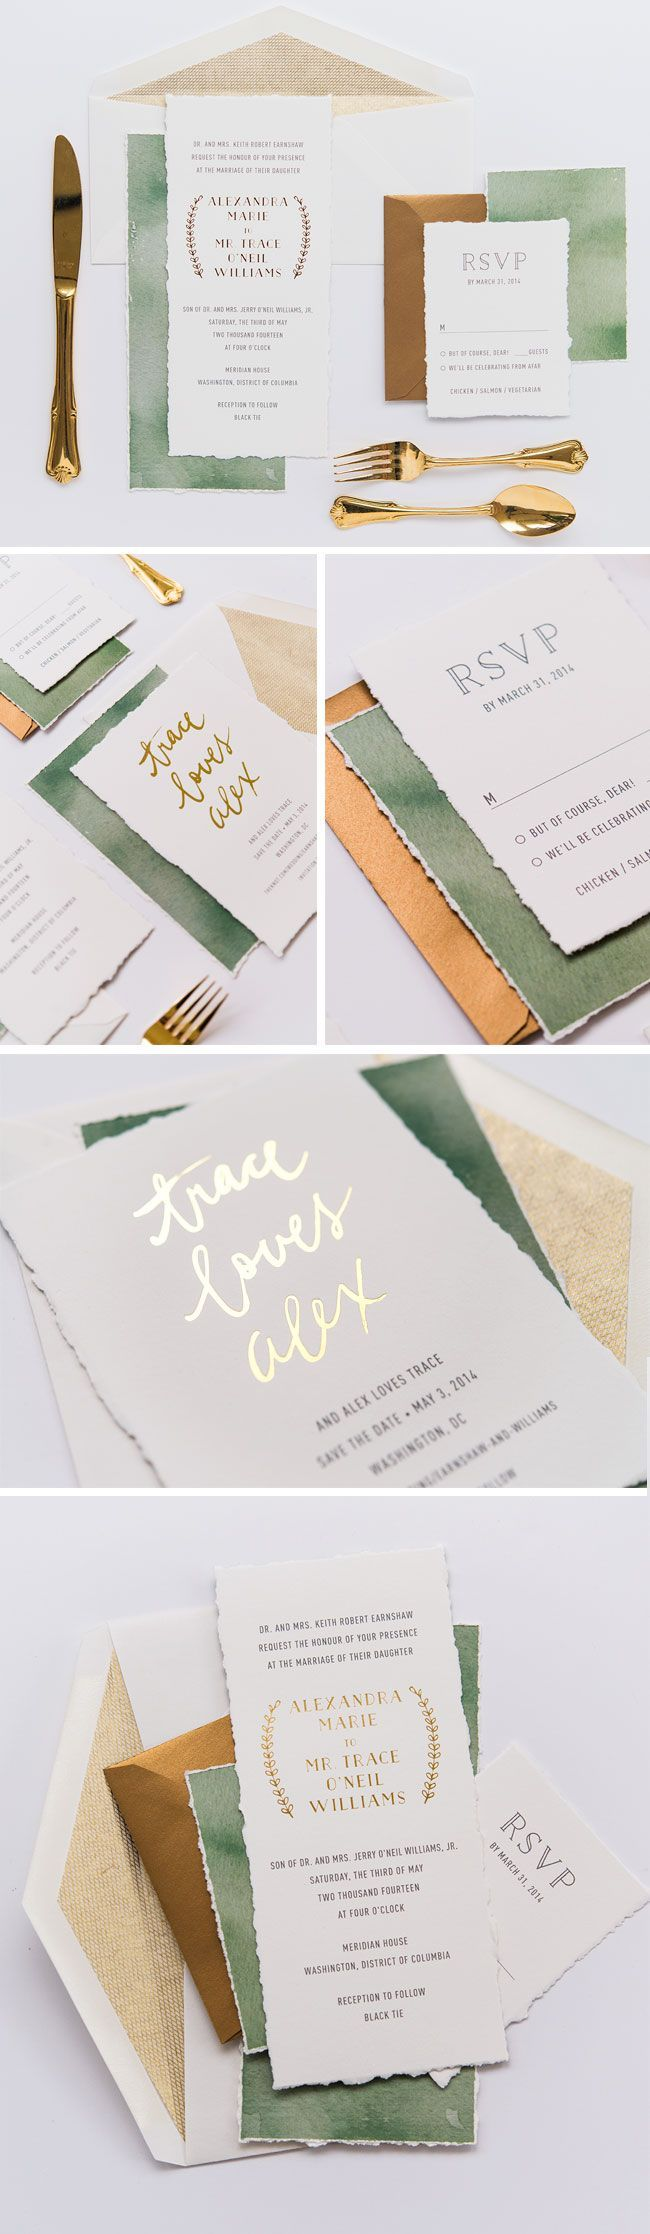 sister wedding invitation card wordings%0A Gold foil and green wedding invites  What is so great about this invitation  is that I immediately know what type of wedding this will be